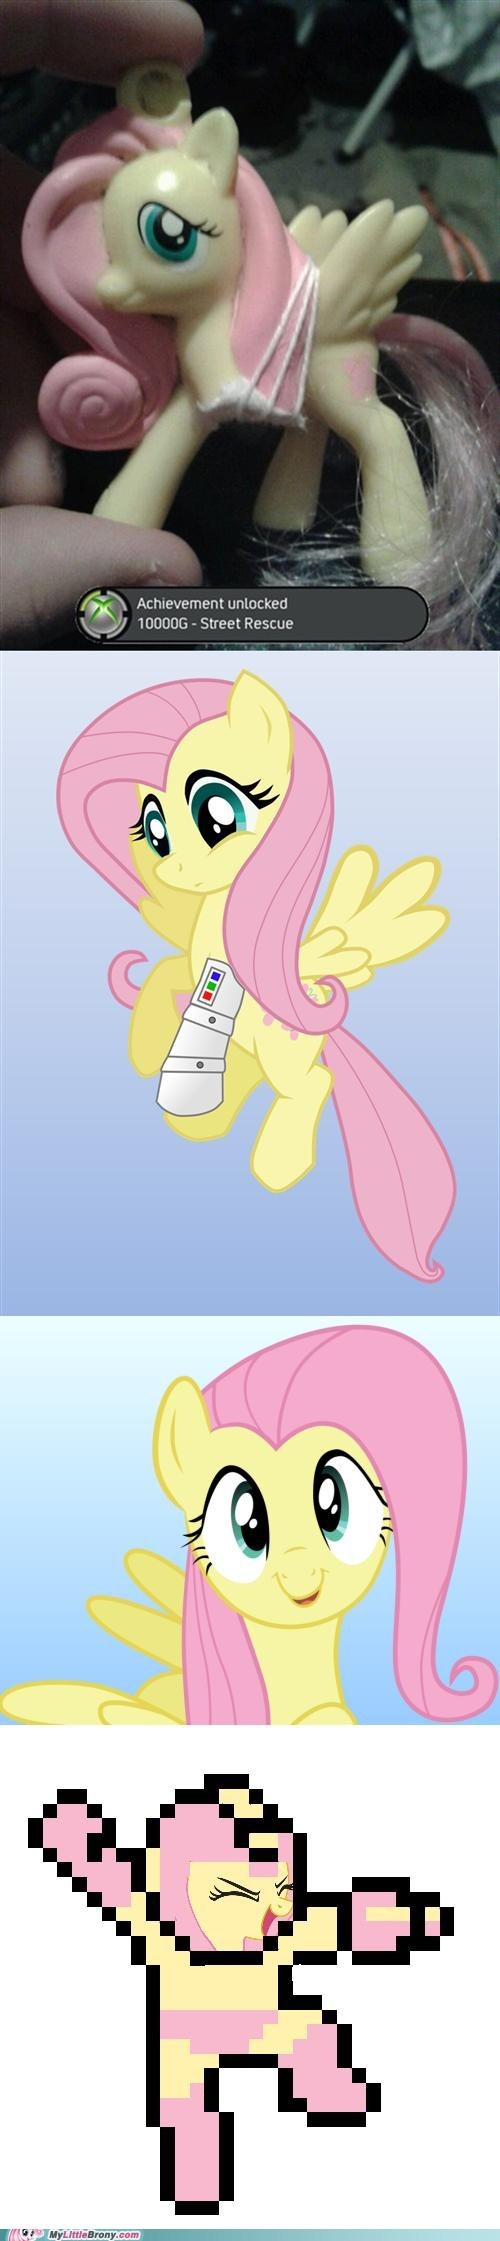 awesome,megaman X,fluttershy